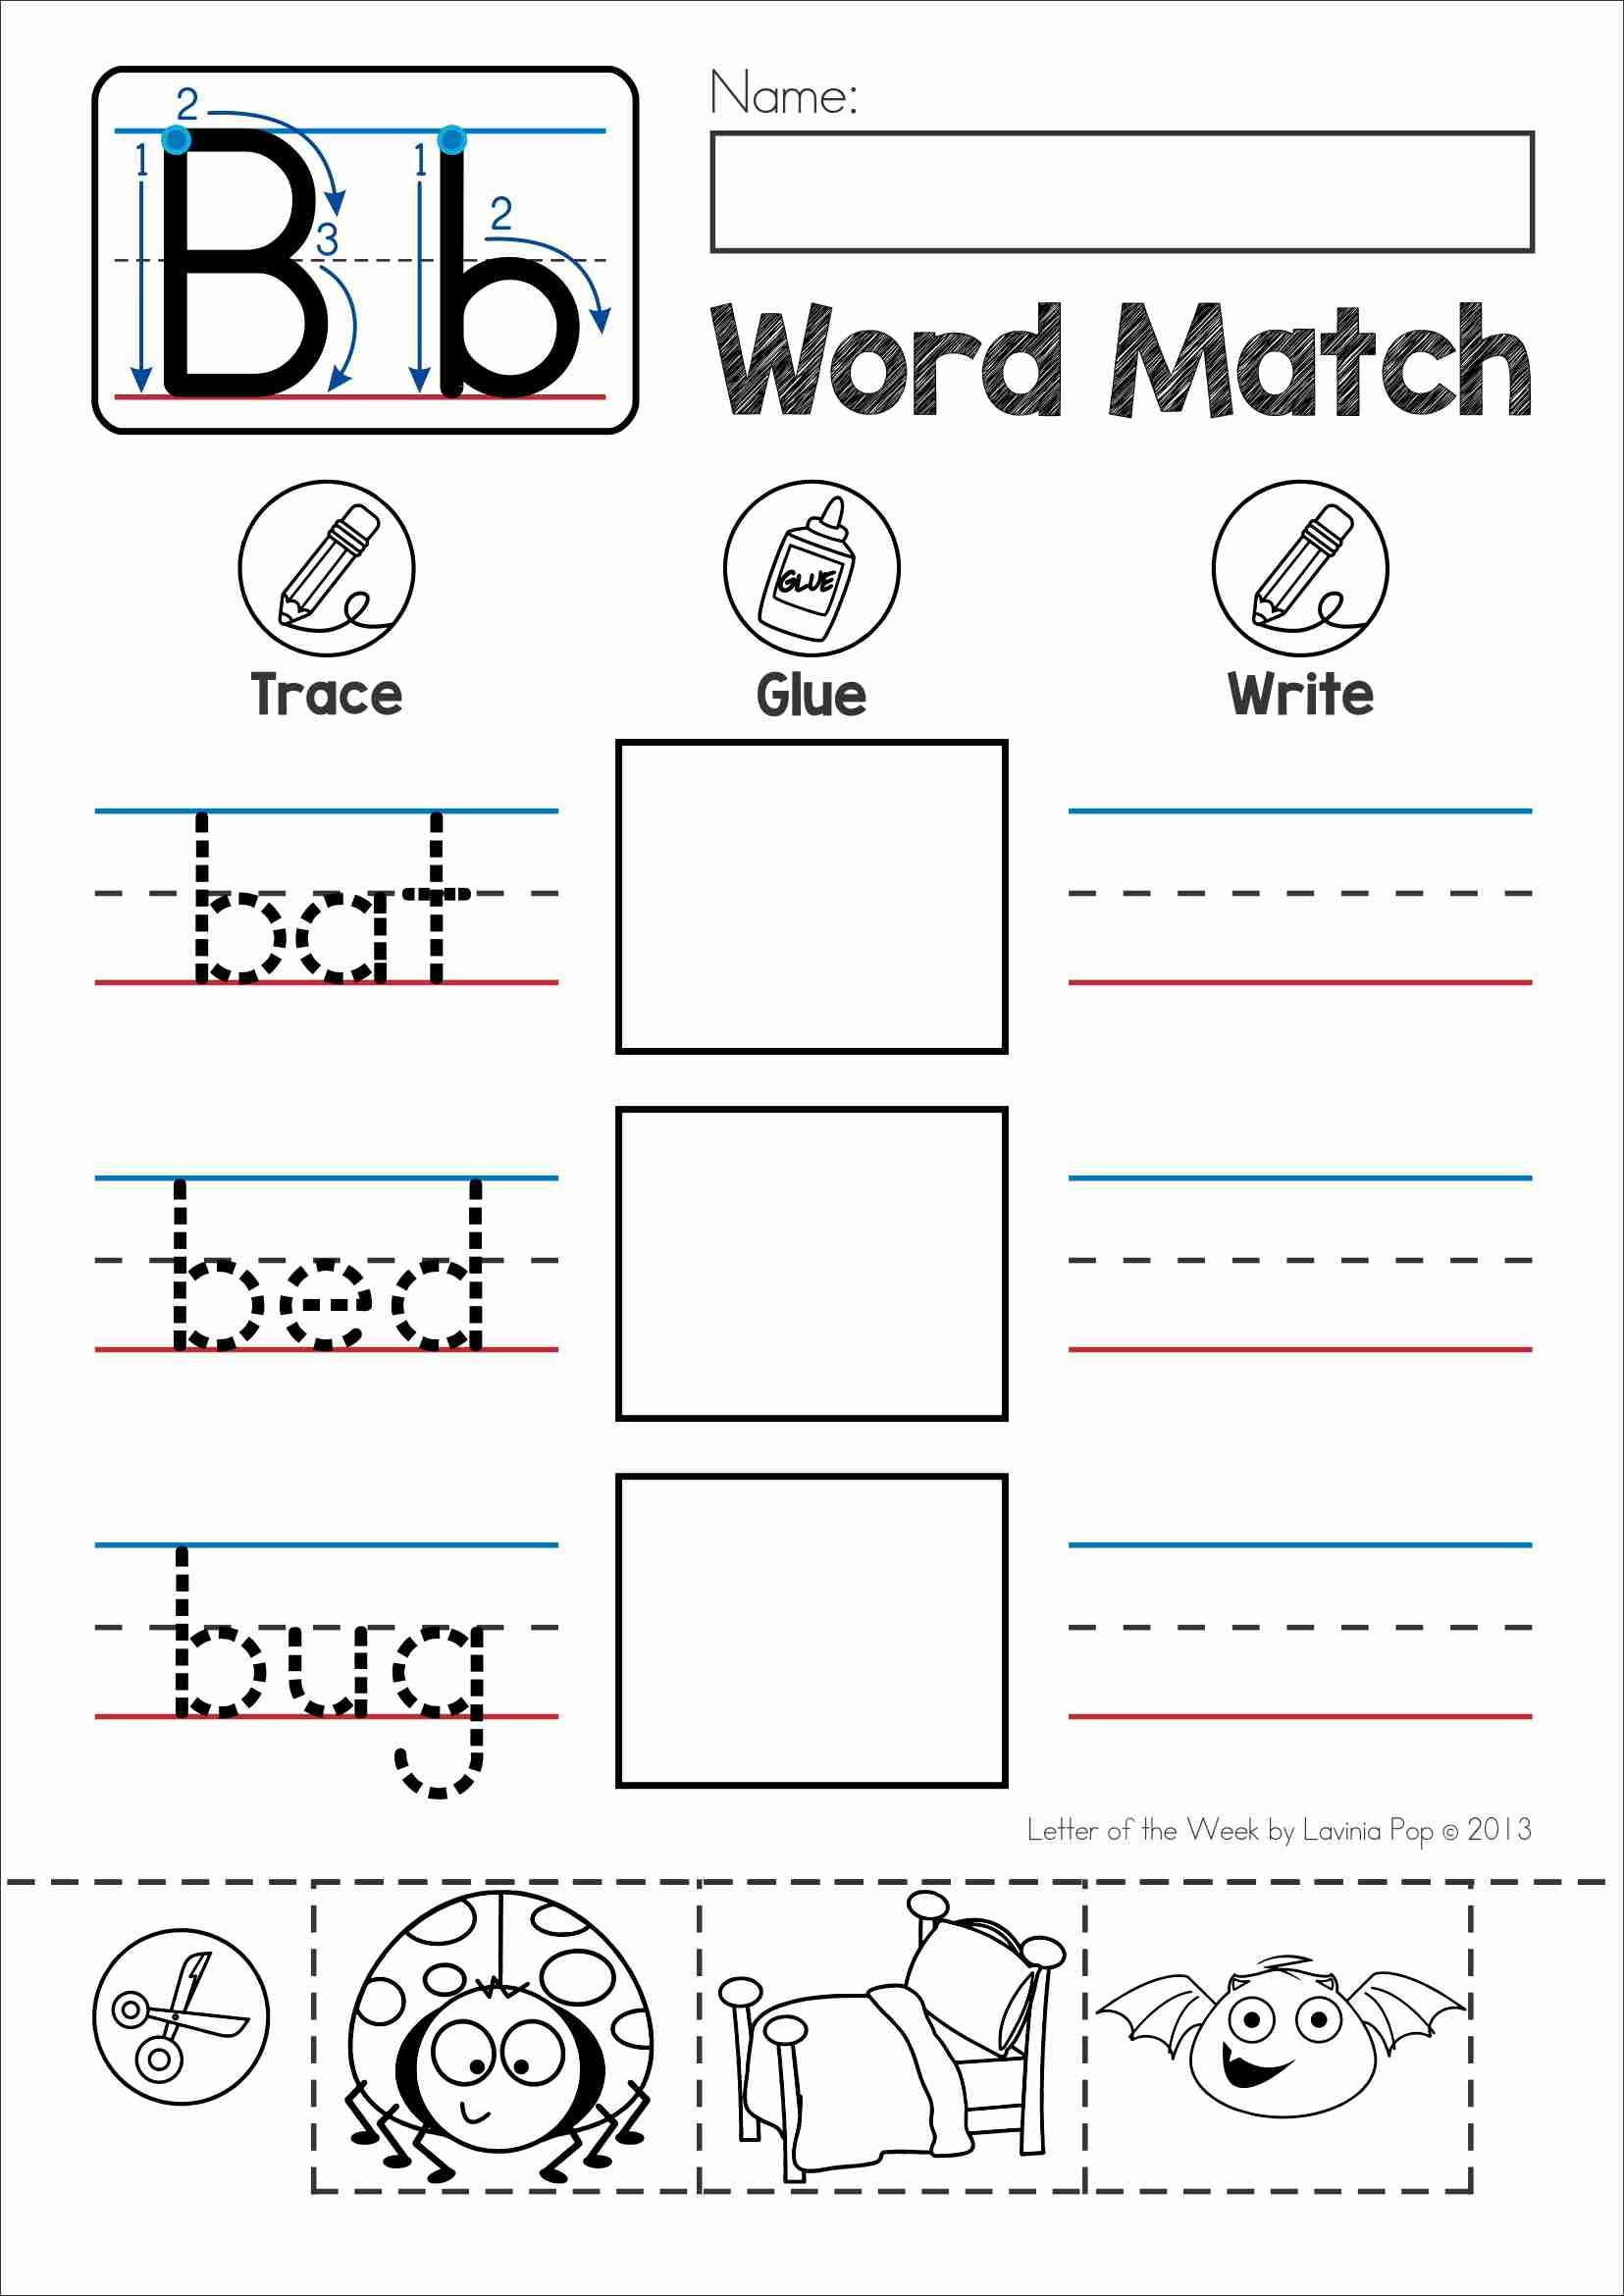 Free Phonics Letter Of The Week B Word Match Cut And Paste